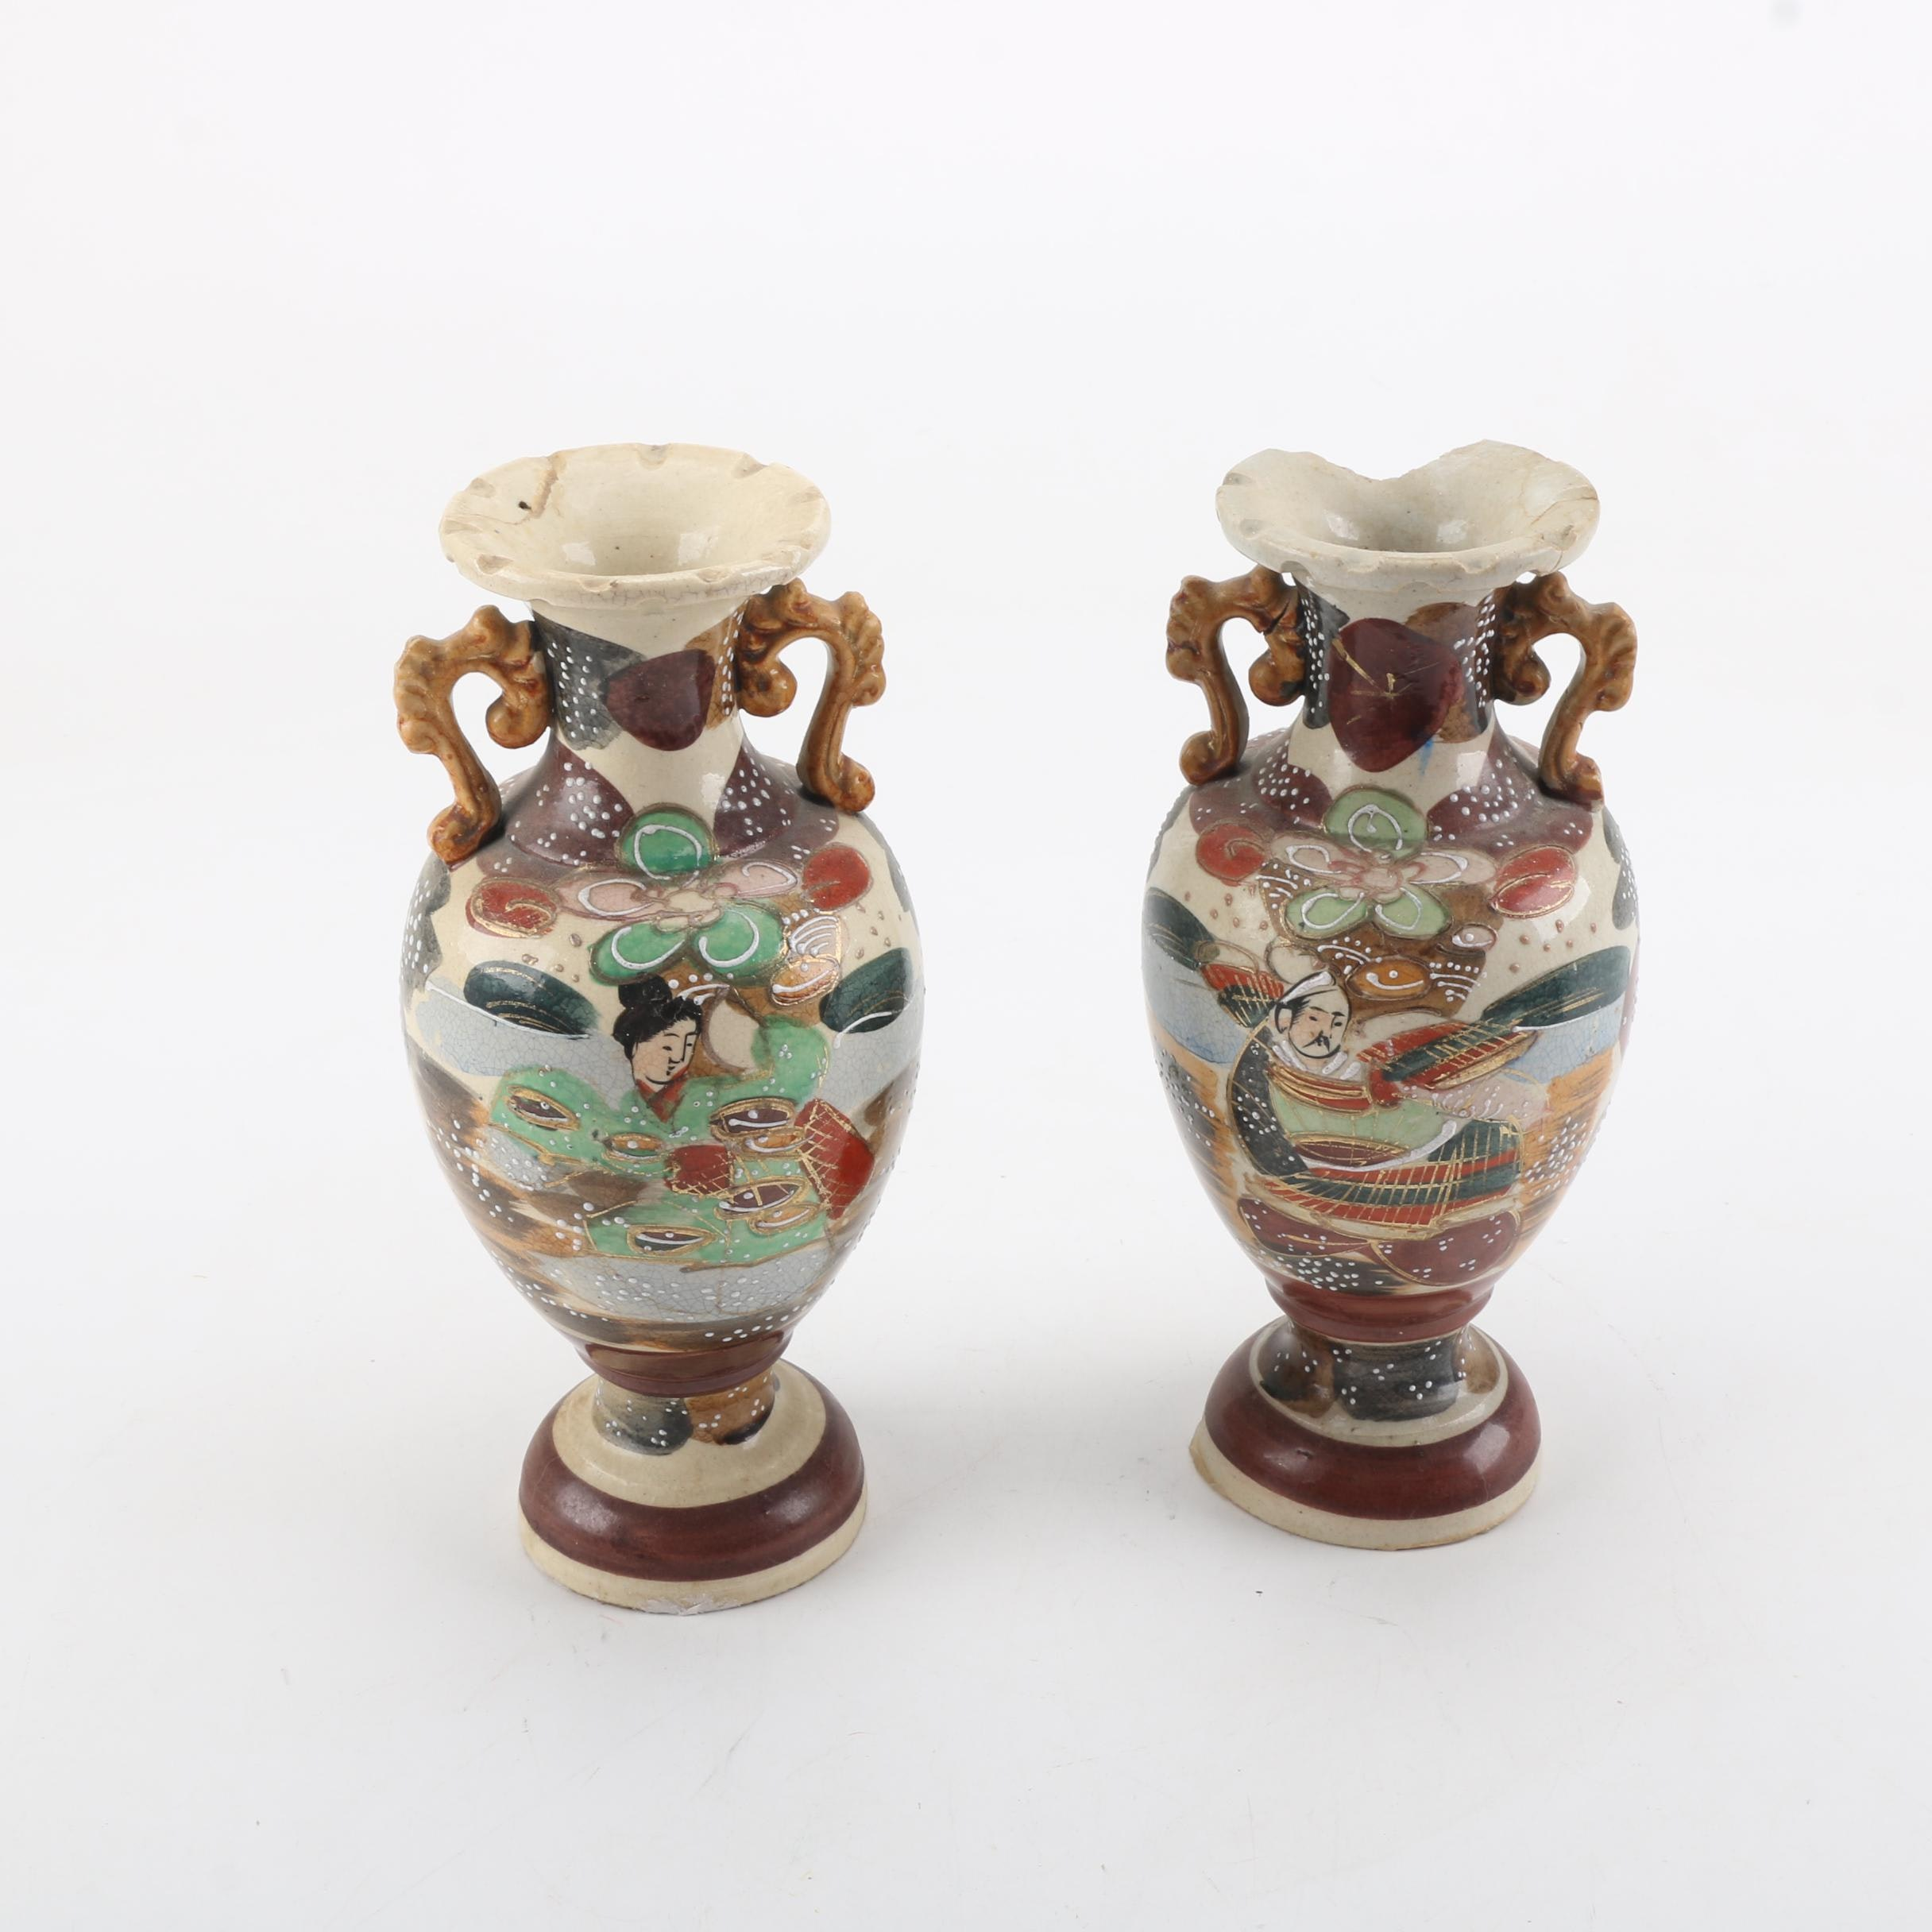 Asian Inspired Ceramic Vases with Hand-Painted Accents